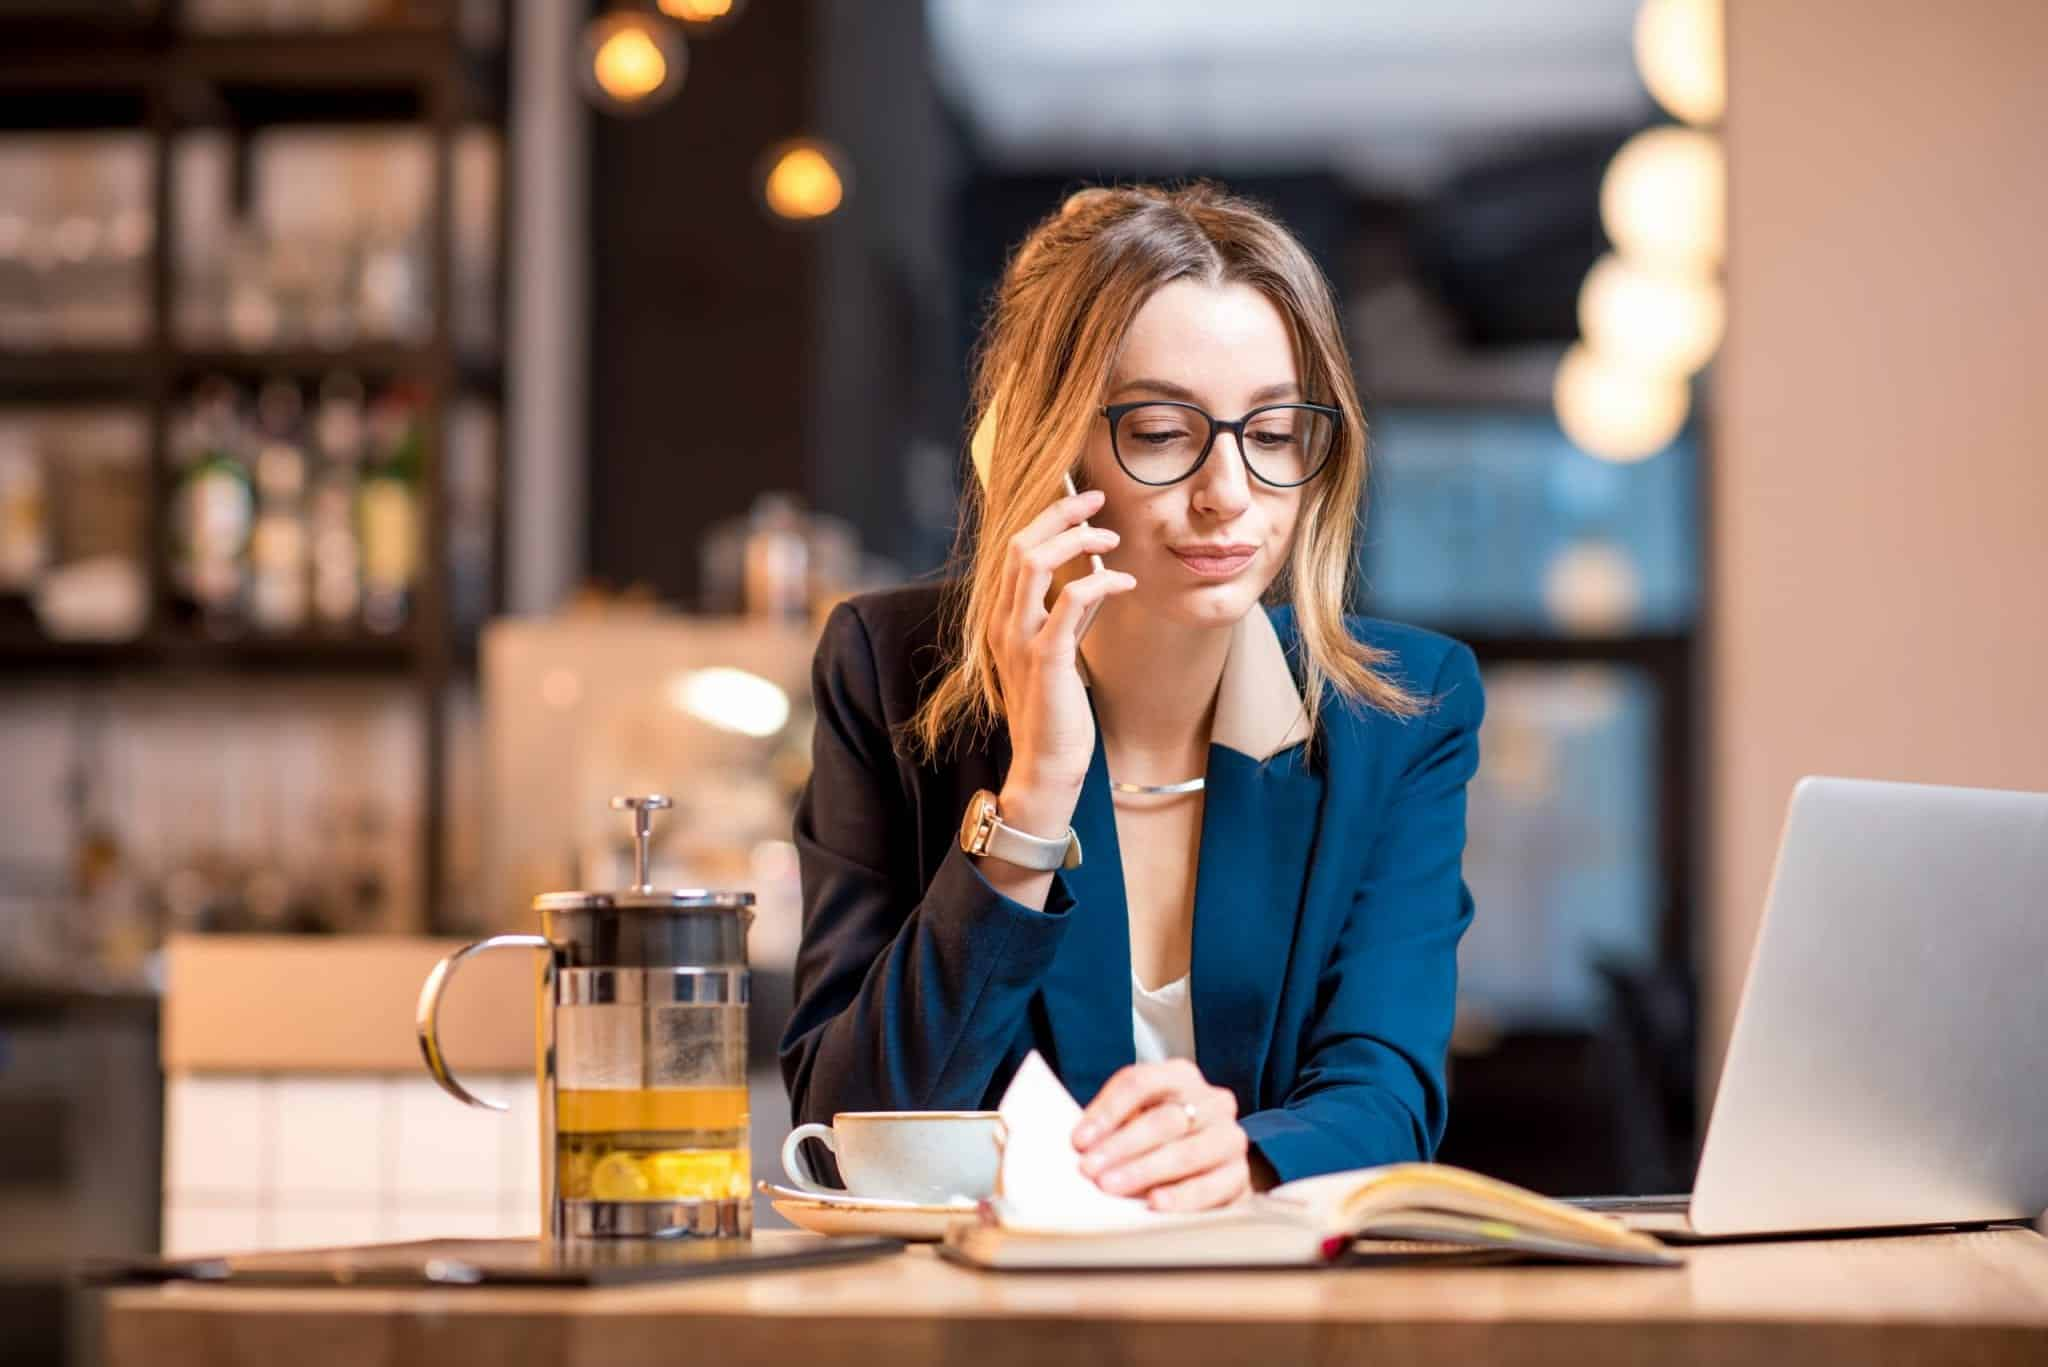 woman working on phone at coffee shop